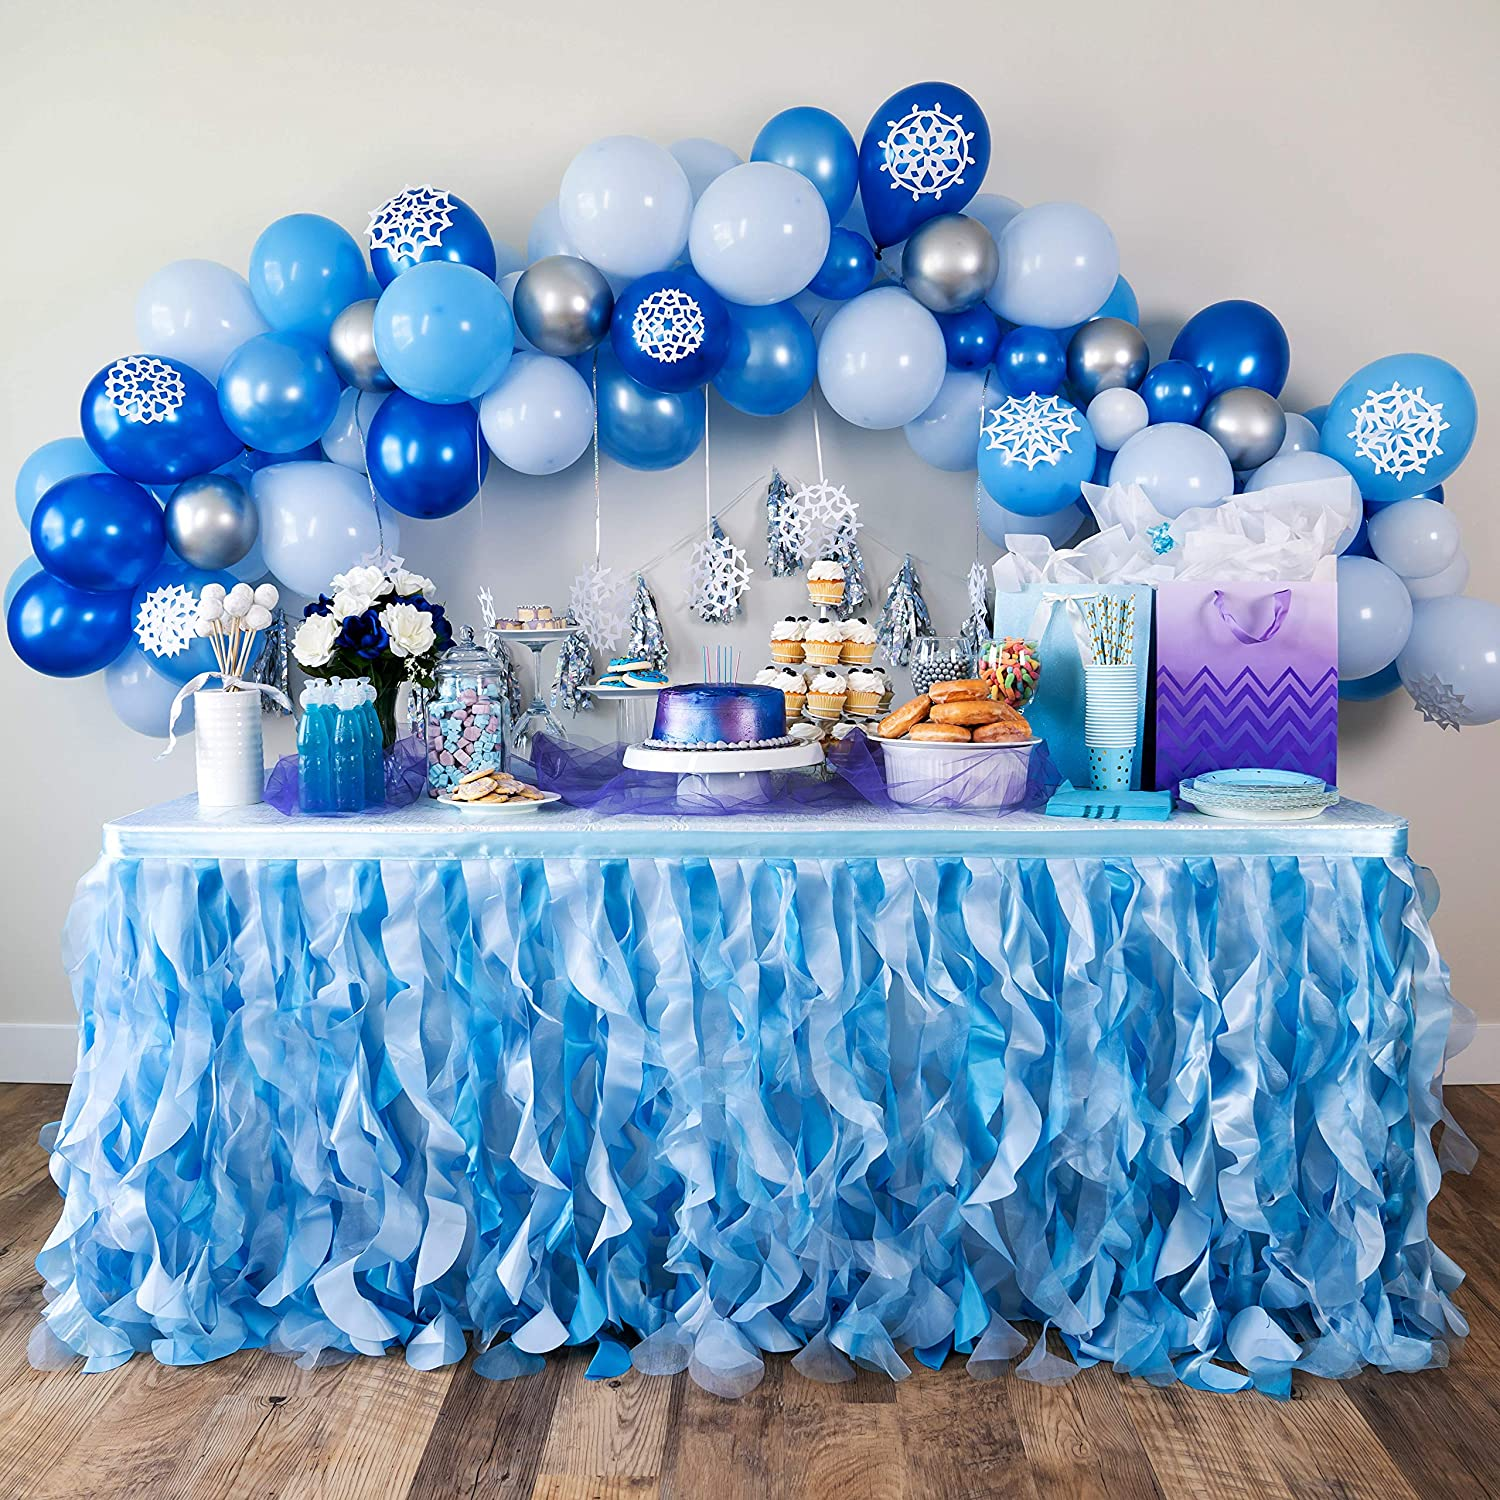 Bluekate Blue Over item handling Sacramento Mall Tutu Table Skirt 9ft with Wil Layer Double Organza